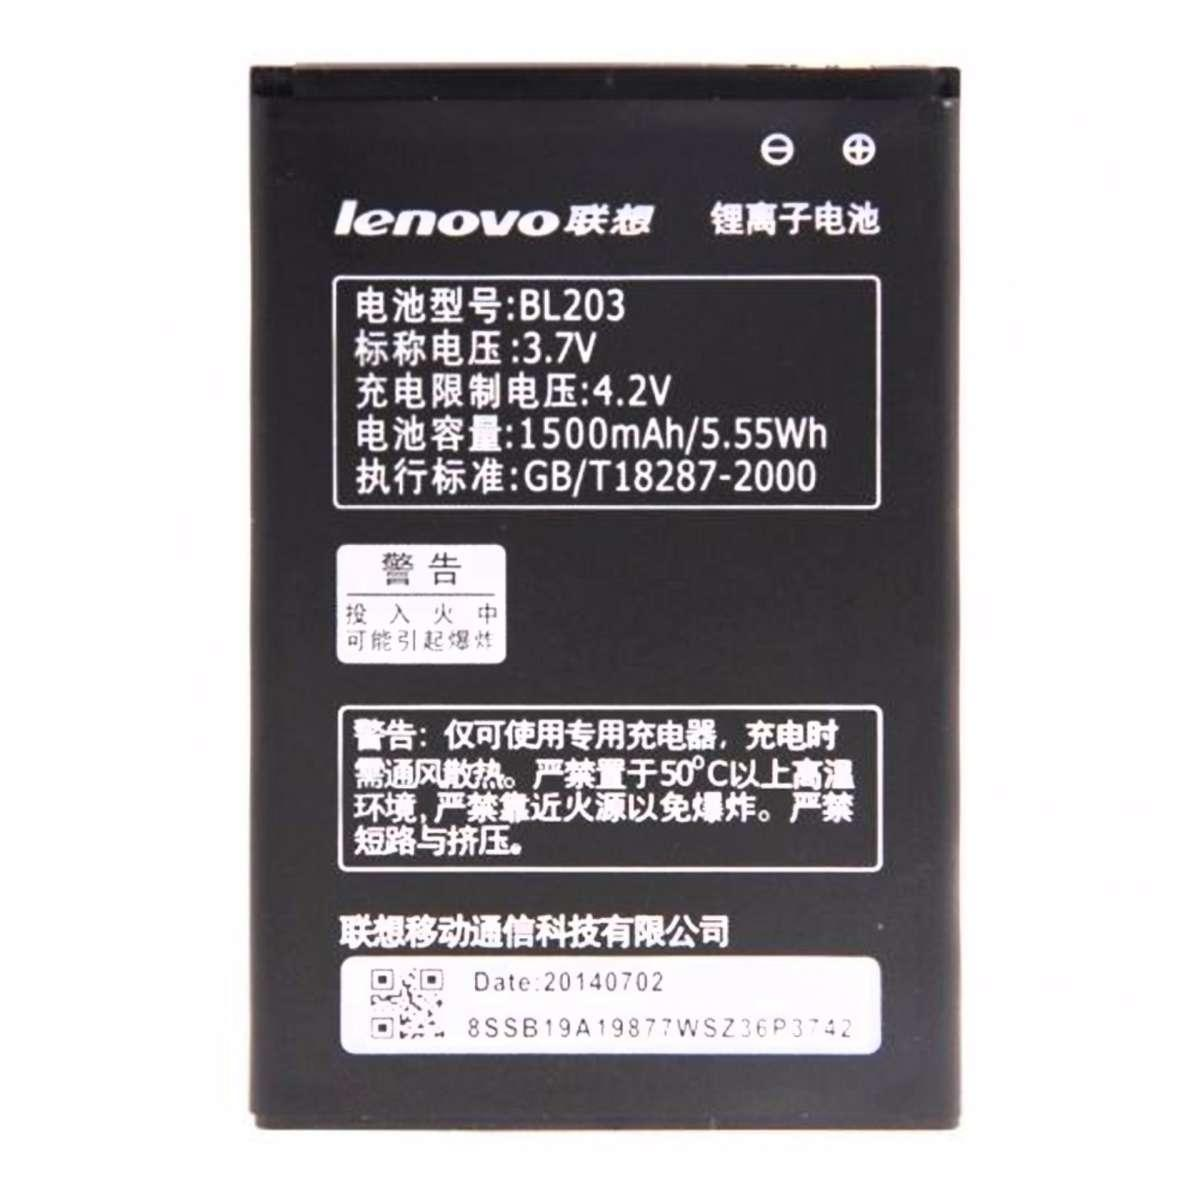 lenovo phone battery BL203